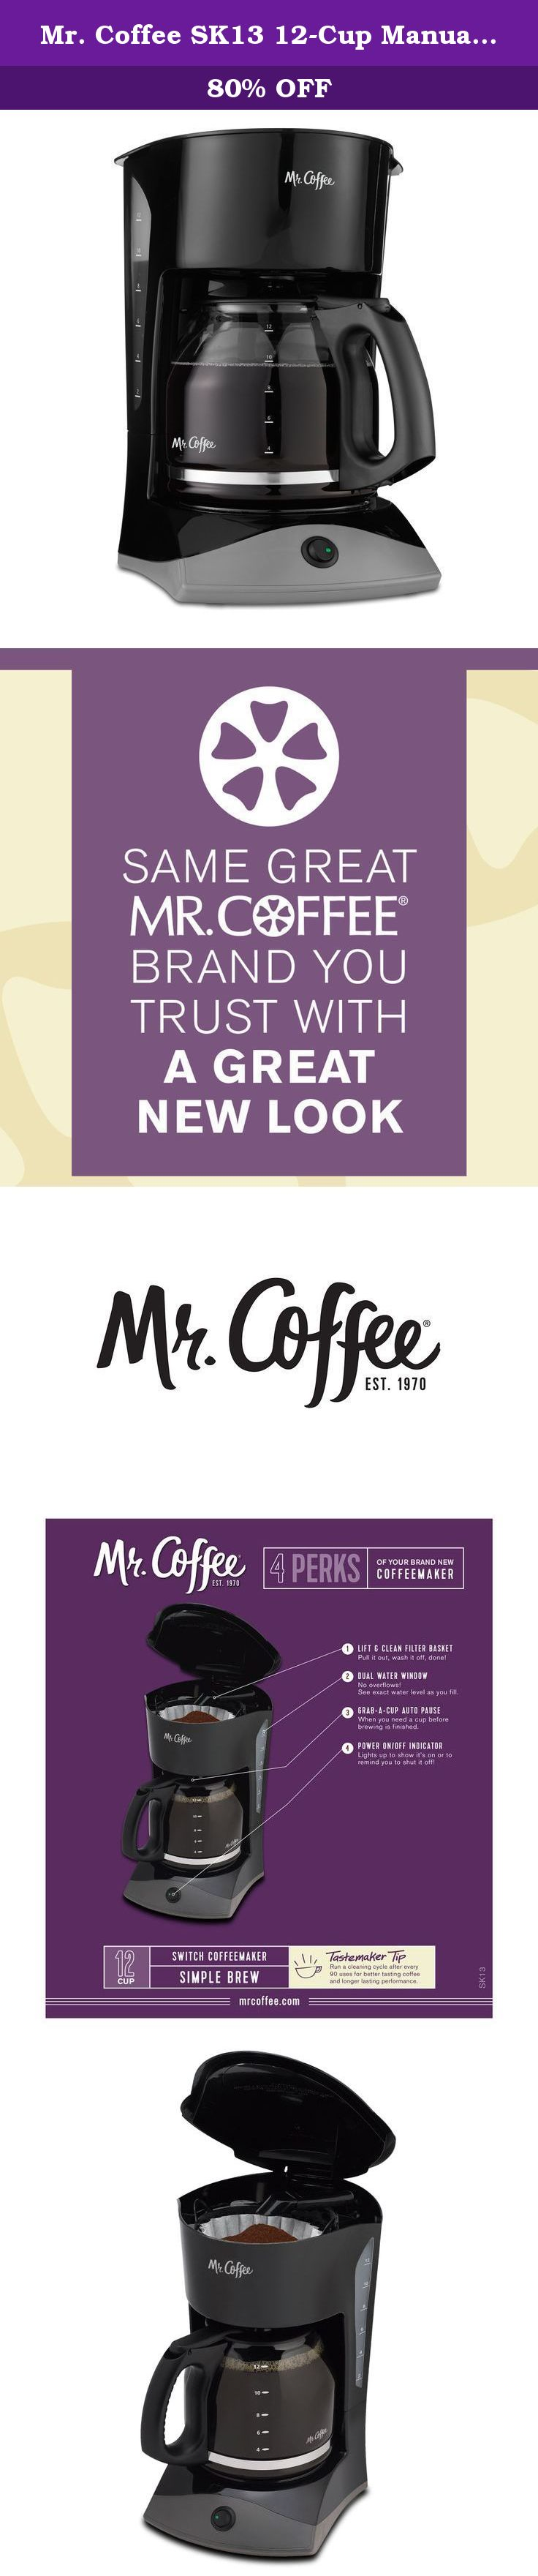 Mr. Coffee SK13 12Cup Manual Coffeemaker, Black. This